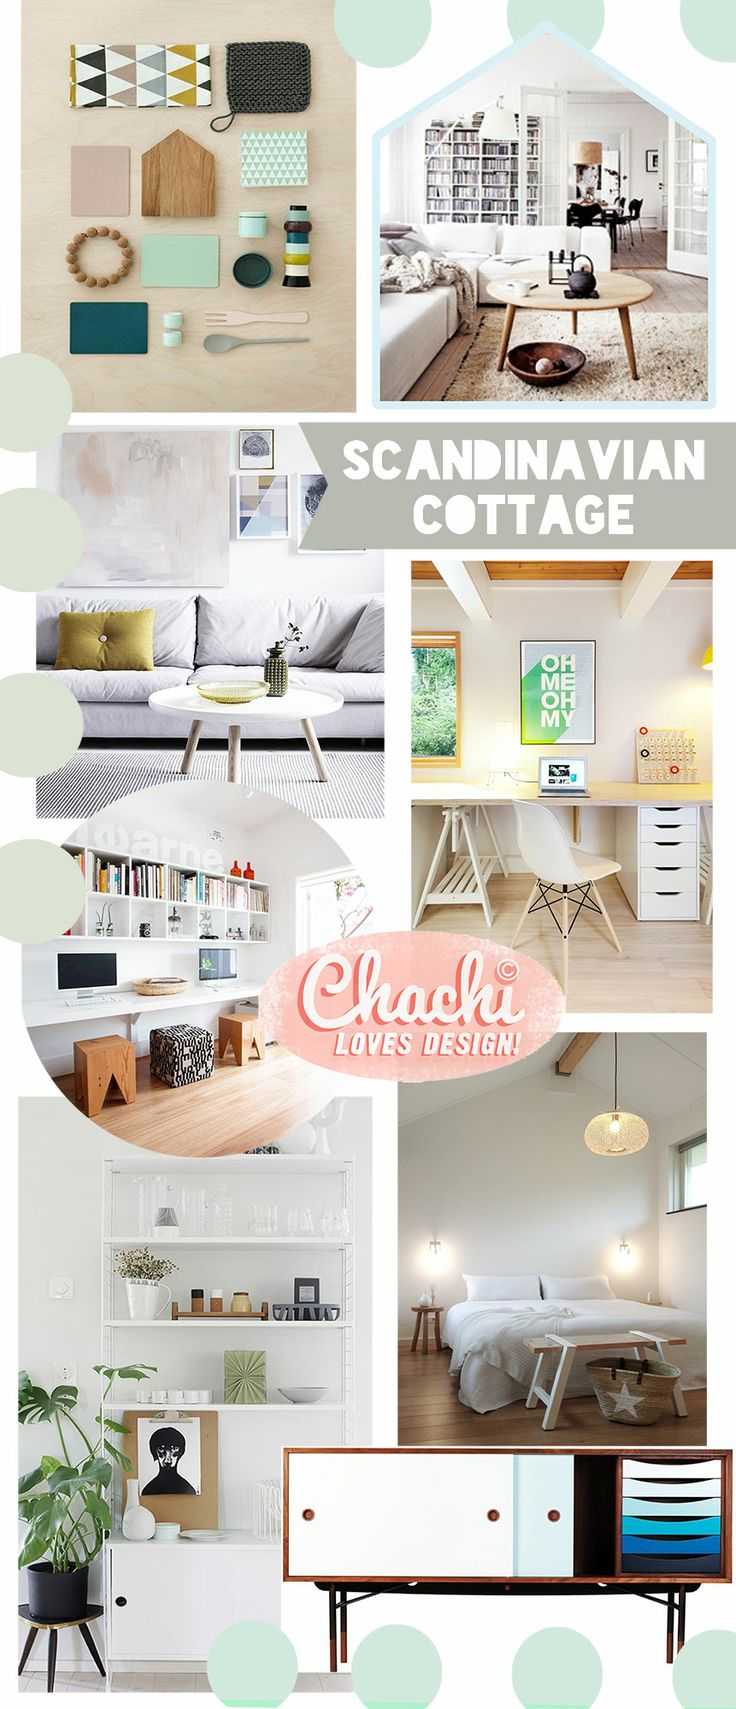 Scandinavian Cottage Inspiration Board // Guest House Redesign Project by Chachi Loves Design, Los Angeles // Modern, family friendly, kid friendly living room, home office ideas // for sources visit: chachilovesdesign.tumblr.com